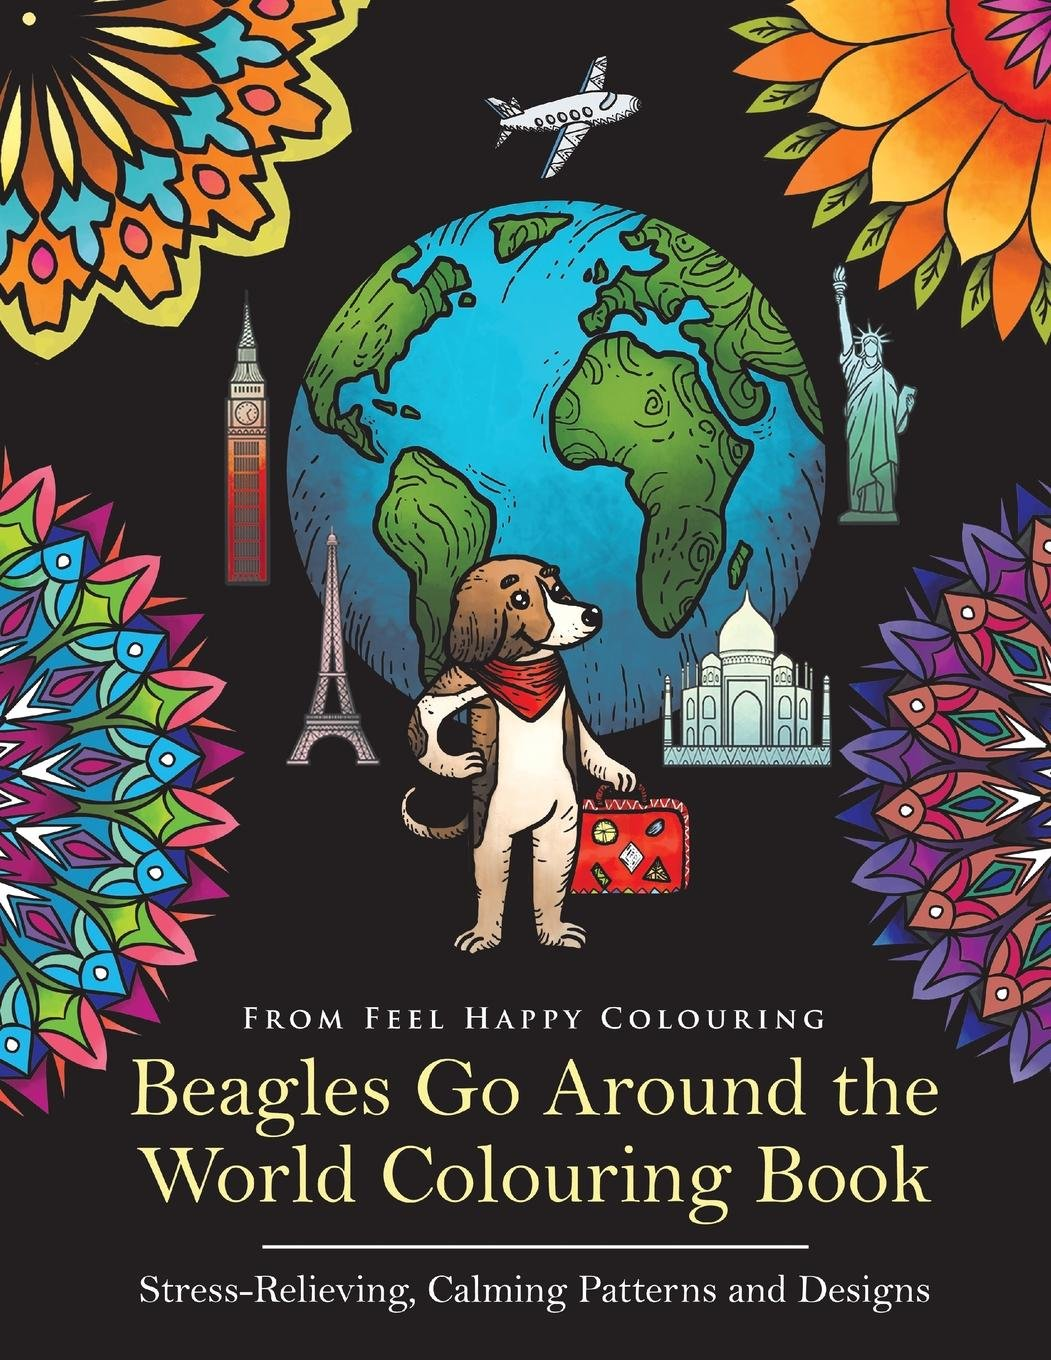 Beagles Go Around the World Colouring Book: Beagle Coloring Book – Perfect Beagle Gifts Idea for Adults and Older Kids: Volume 1